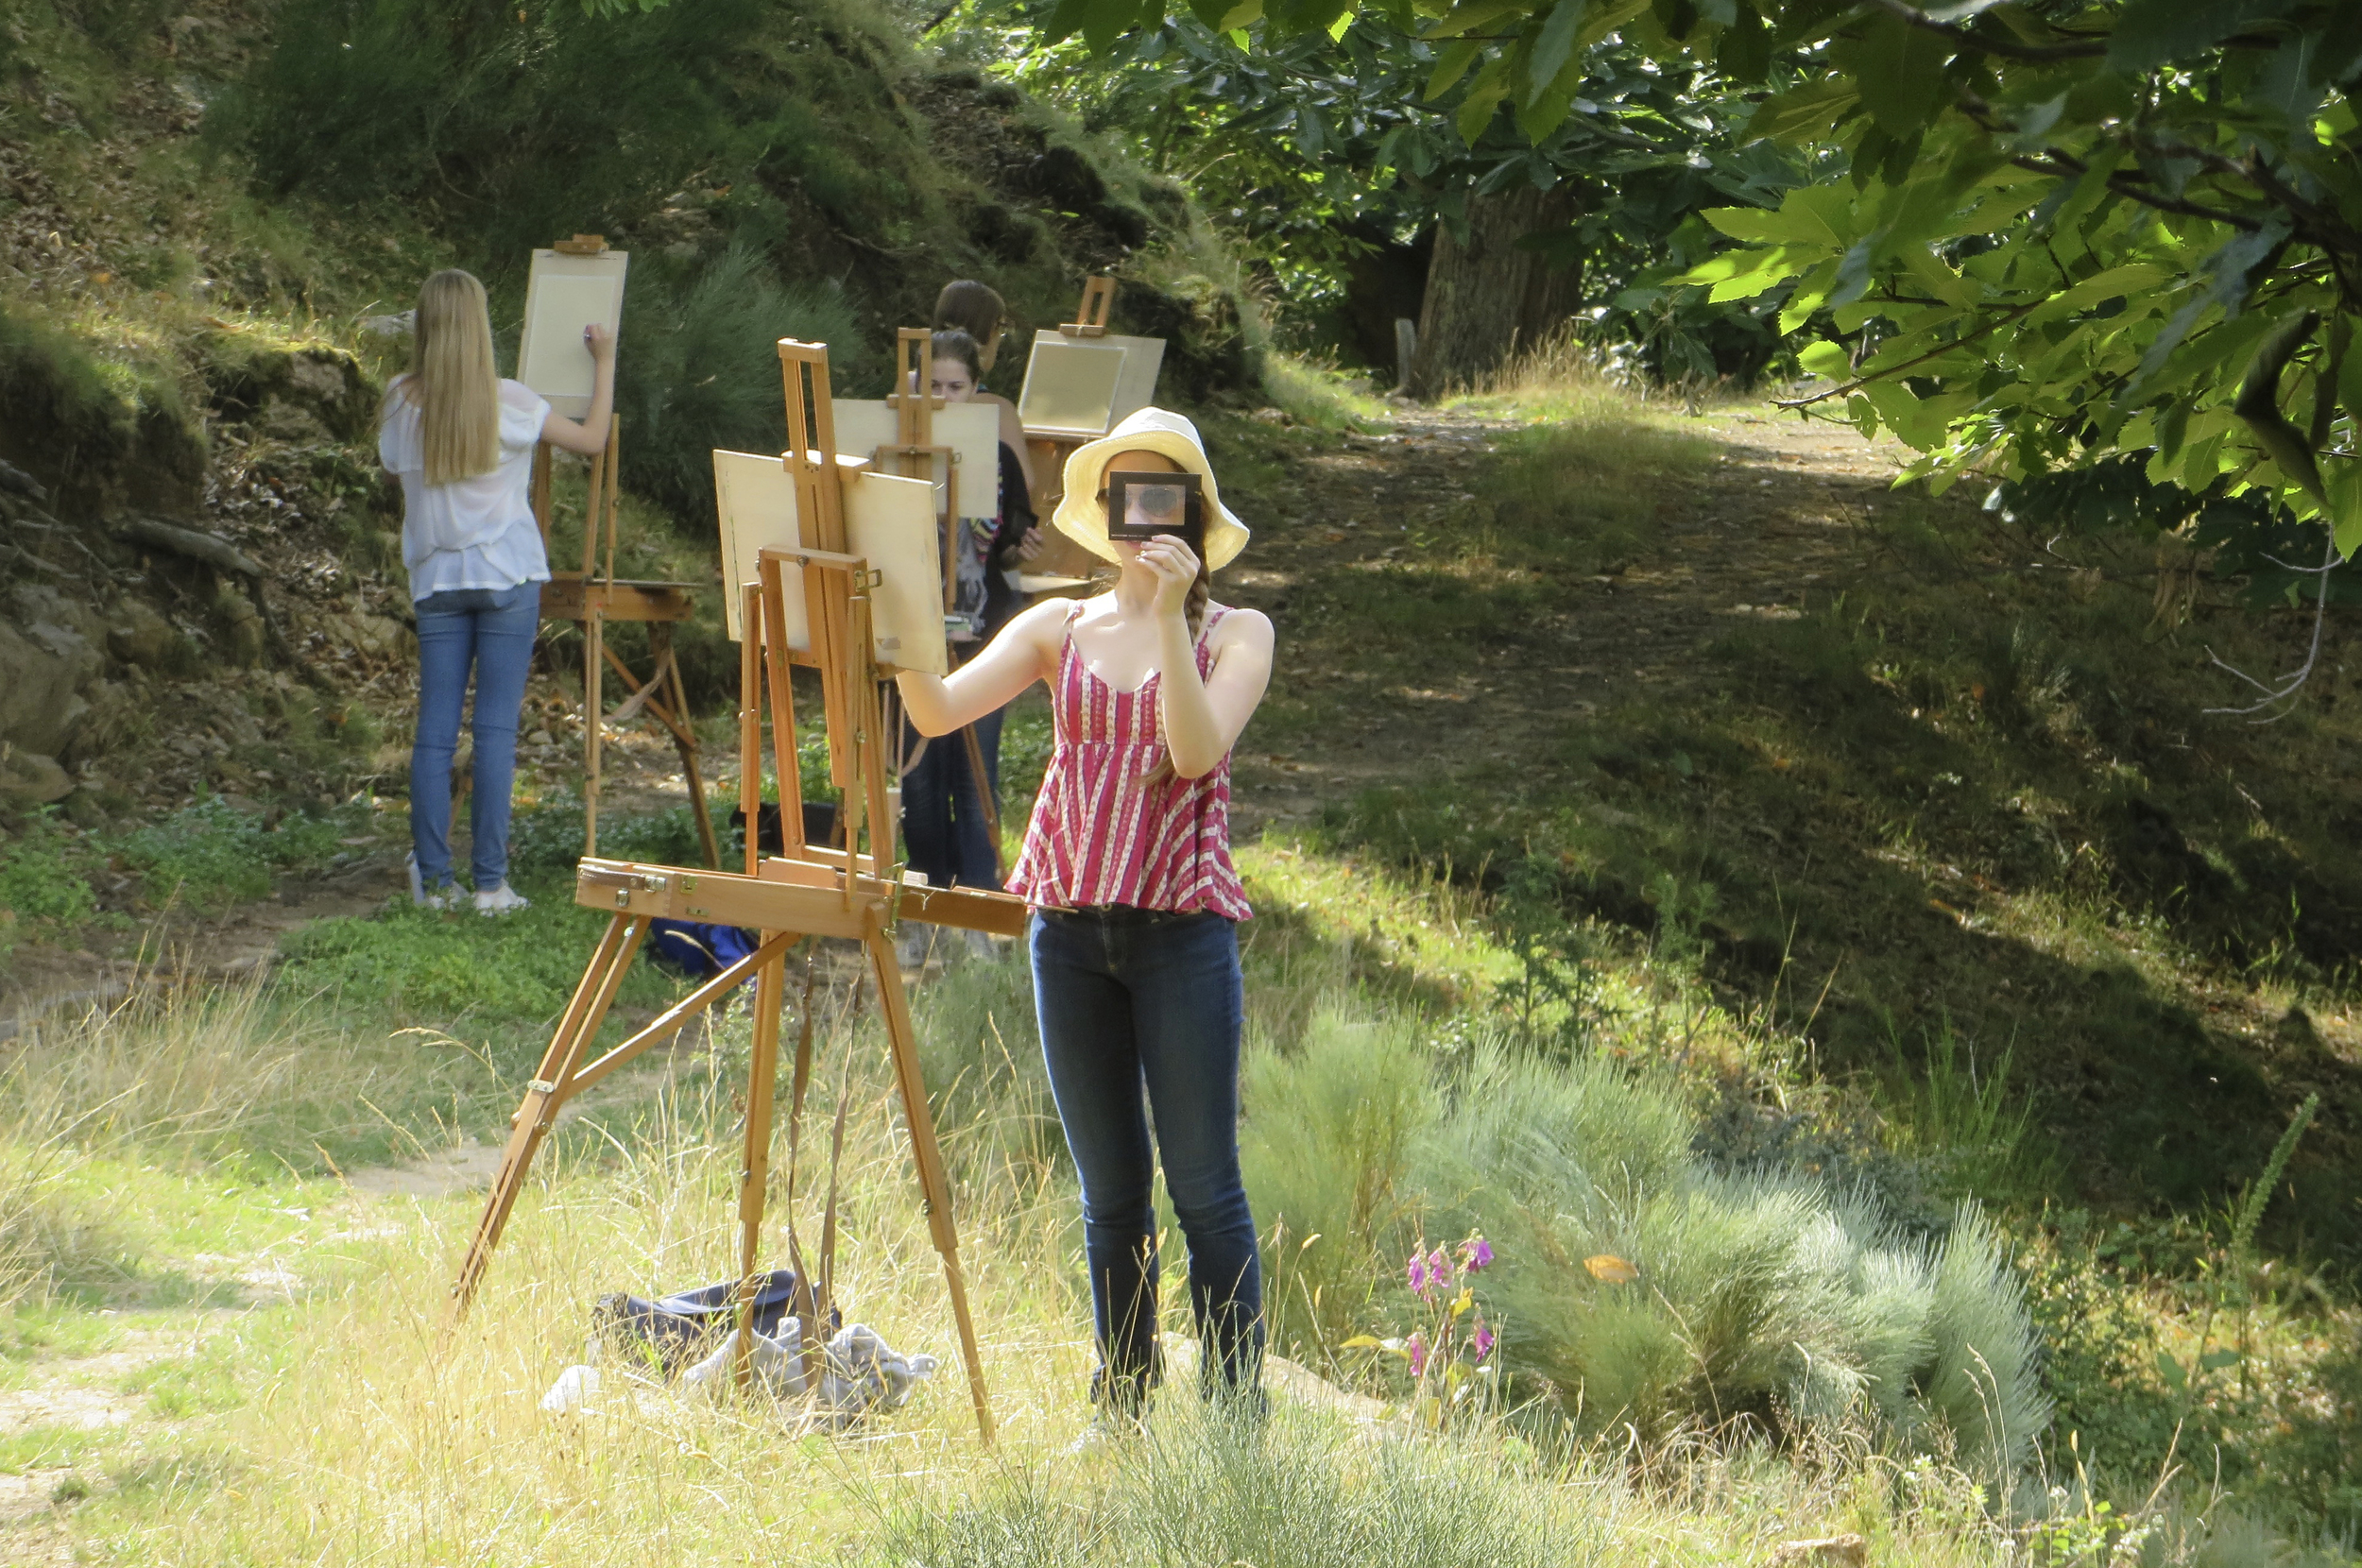 Drawing and Painting students working outside in the landscape